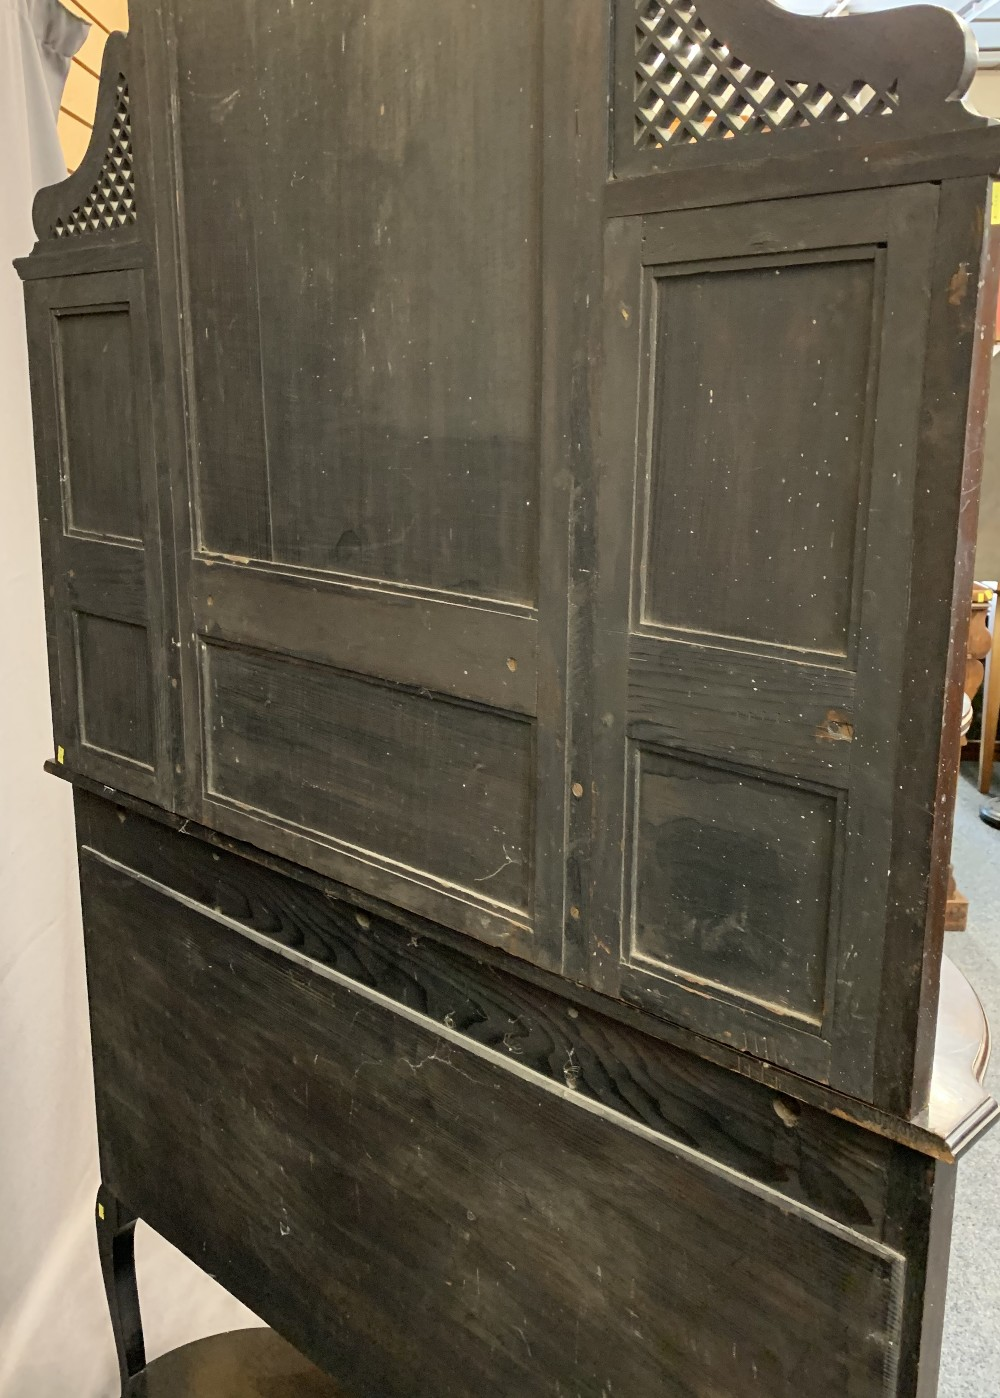 VICTORIAN MIRROR BACKED SIDE CABINET - ebonised on cabriole supports, the mirrors bevel glass, 2. - Image 3 of 3